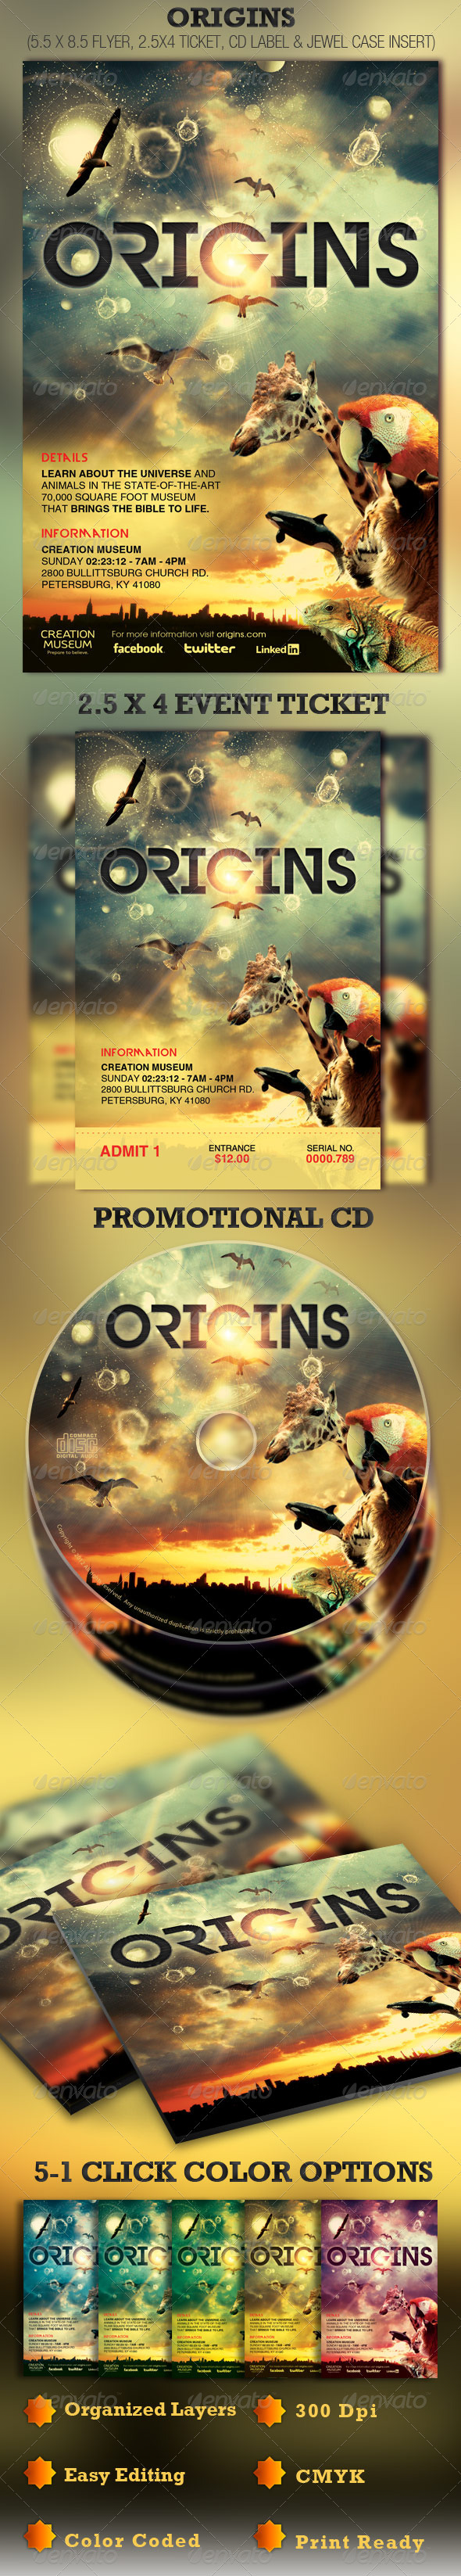 GraphicRiver Origins Flyer Ticket and CD Template 1690180